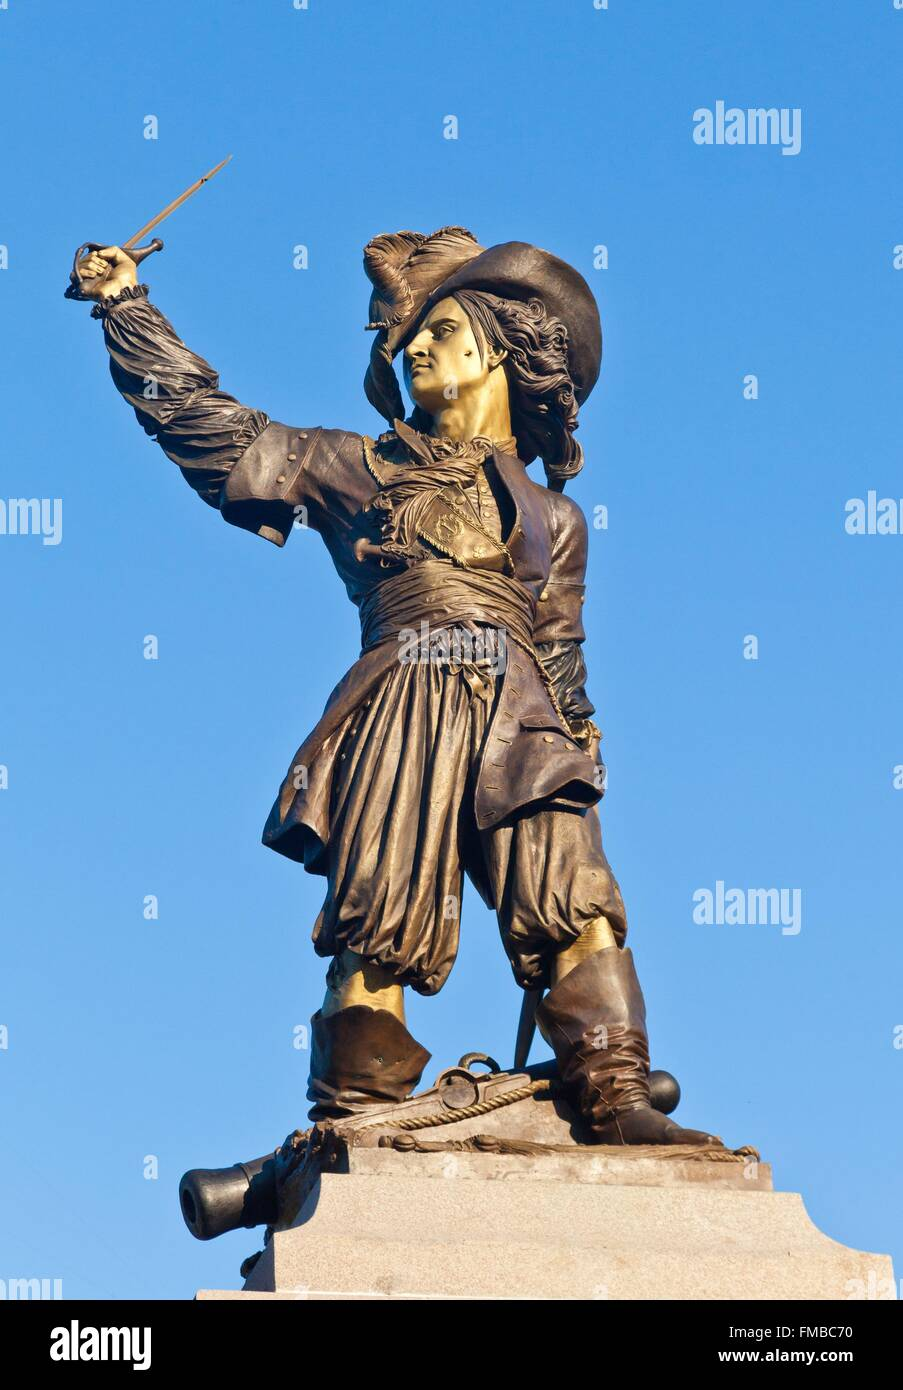 France, Nord, Dunkirk, statue of Jean Bart on Place Jean Bart, the famous French corsair born in Dunkirk - Stock Image